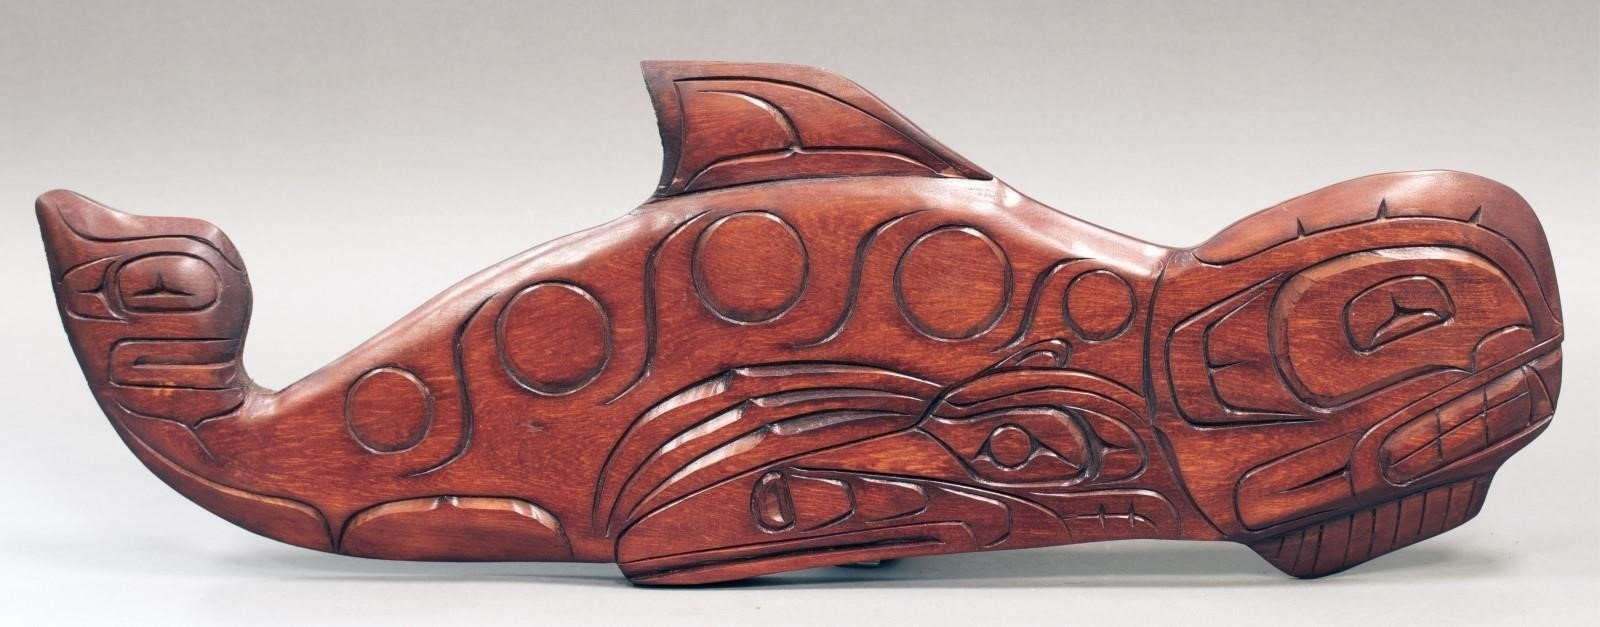 Northwest coast u201ckiller whaleu201d cedar relief hodgins art auctions